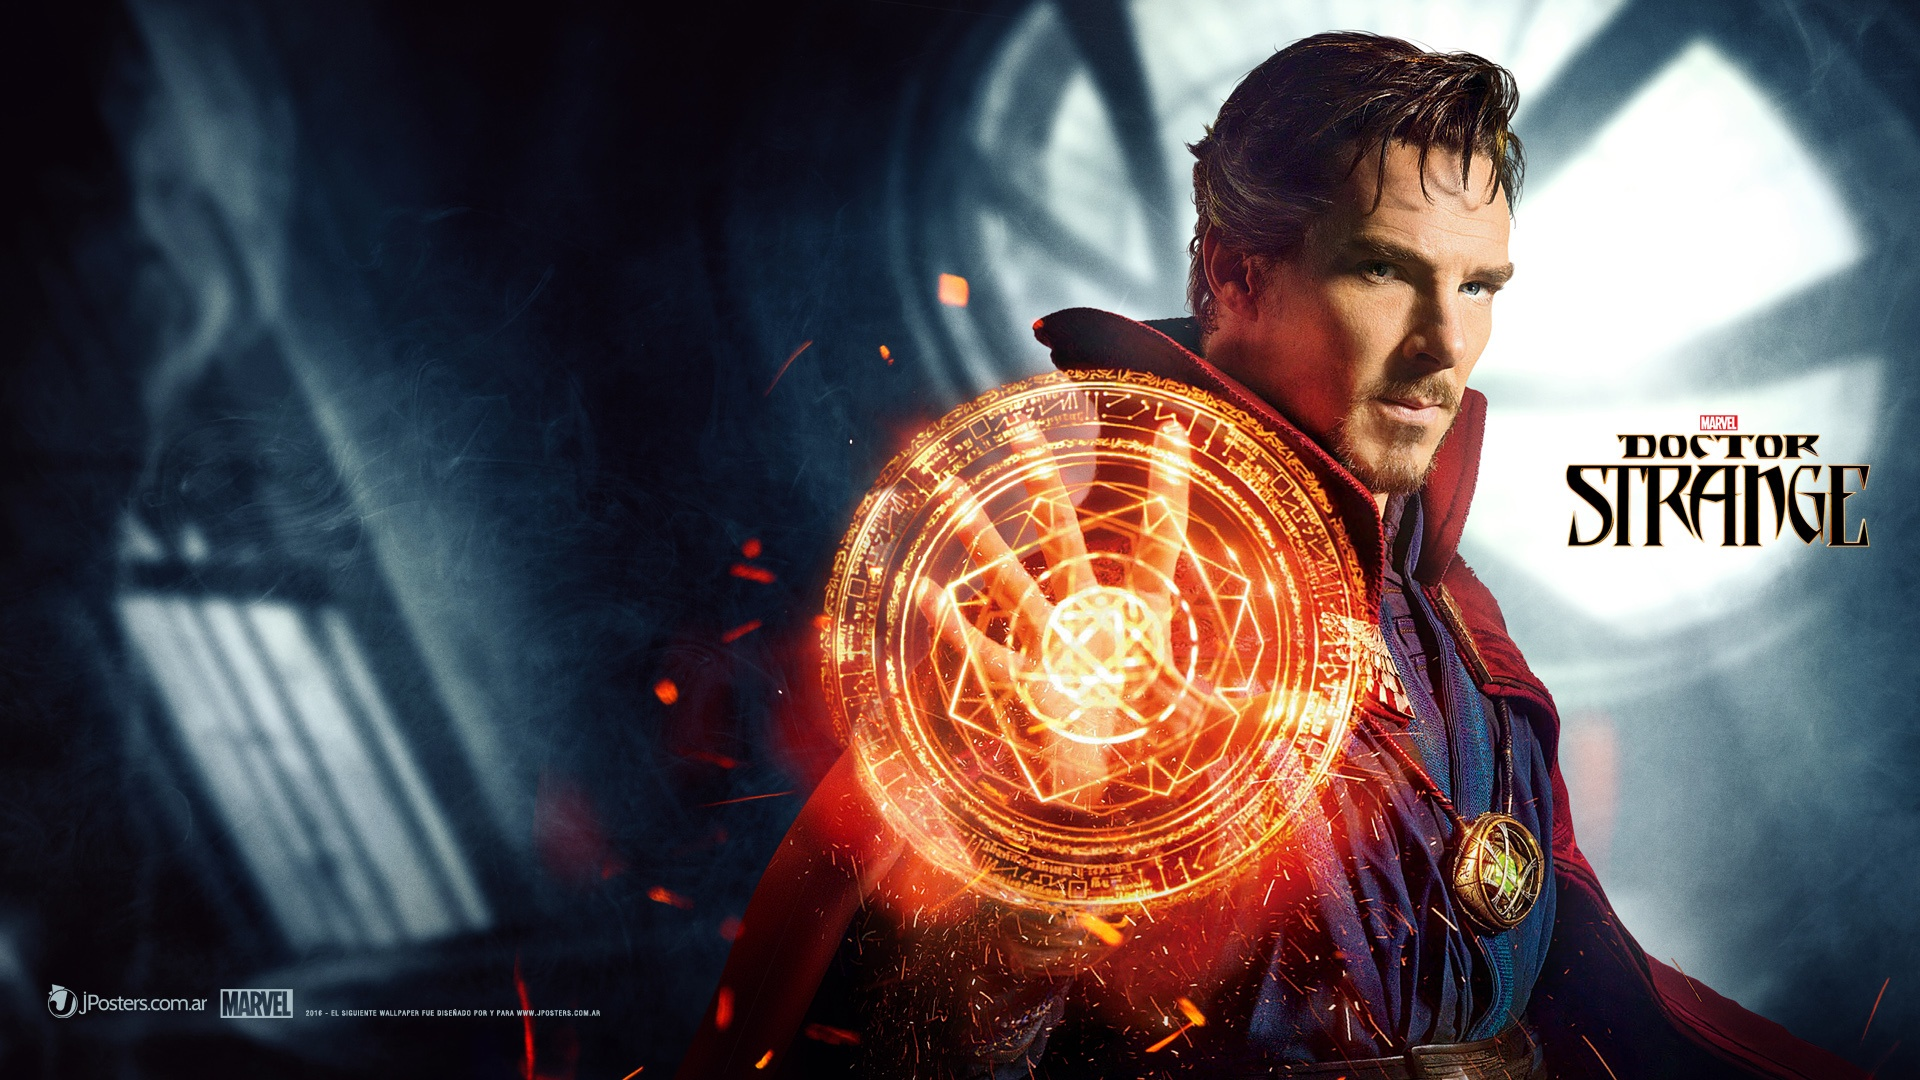 Hd Wallpapers 1080p Nature Animated Doctor Strange 2016 Wallpapers In Jpg Format For Free Download